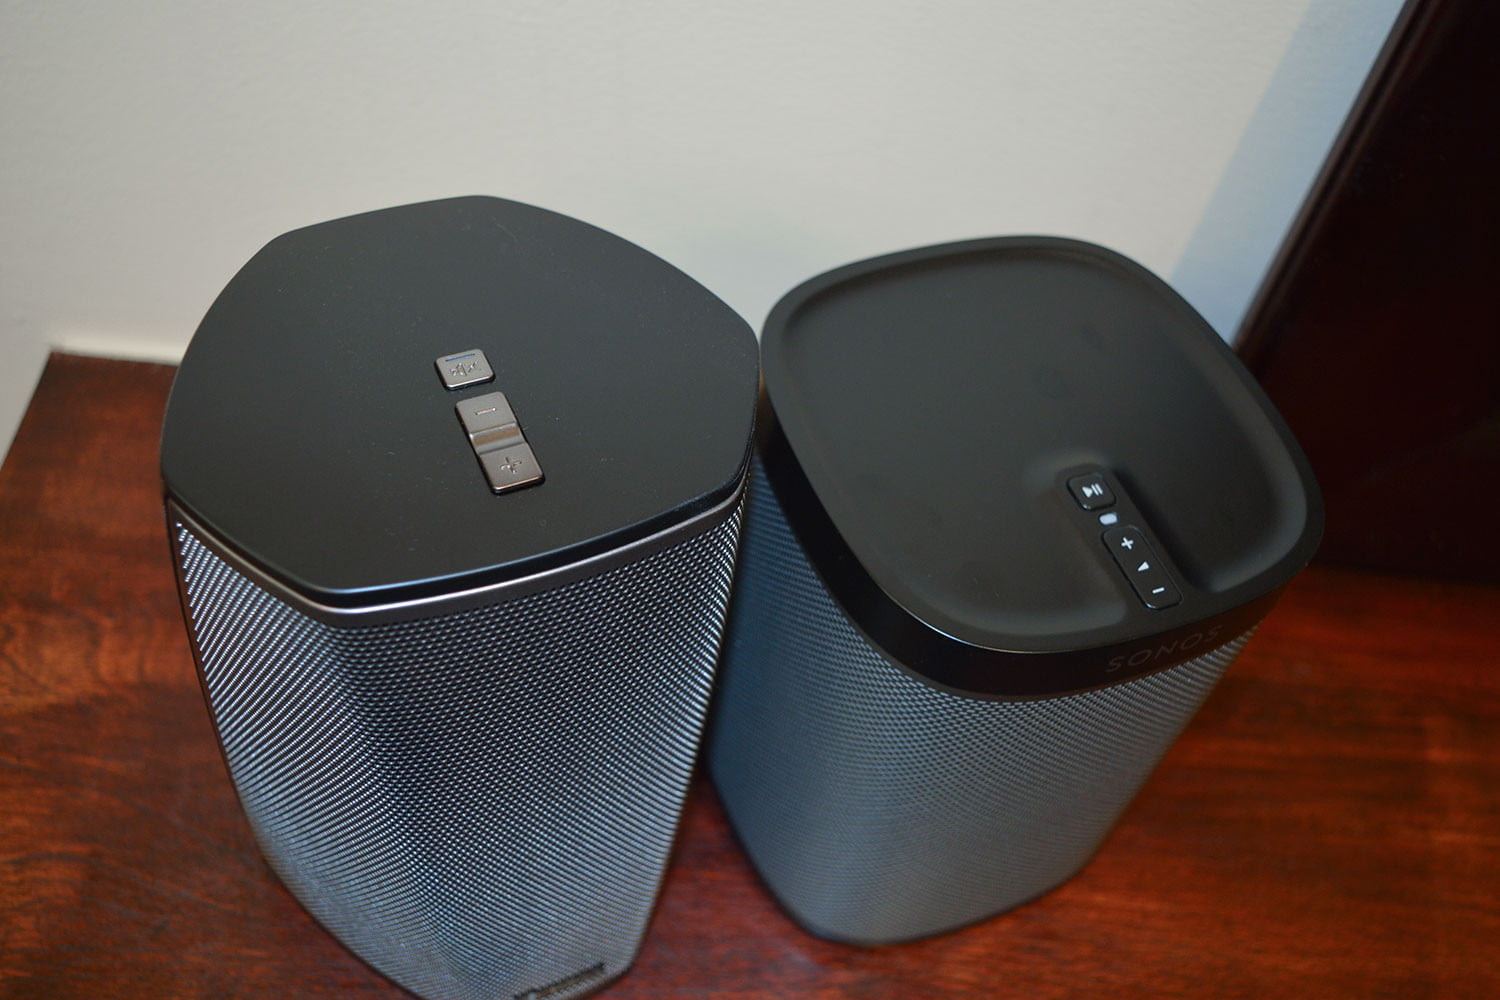 speakers like sonos. denon heos 1 (left) and sonos play:1 (right) speakers like